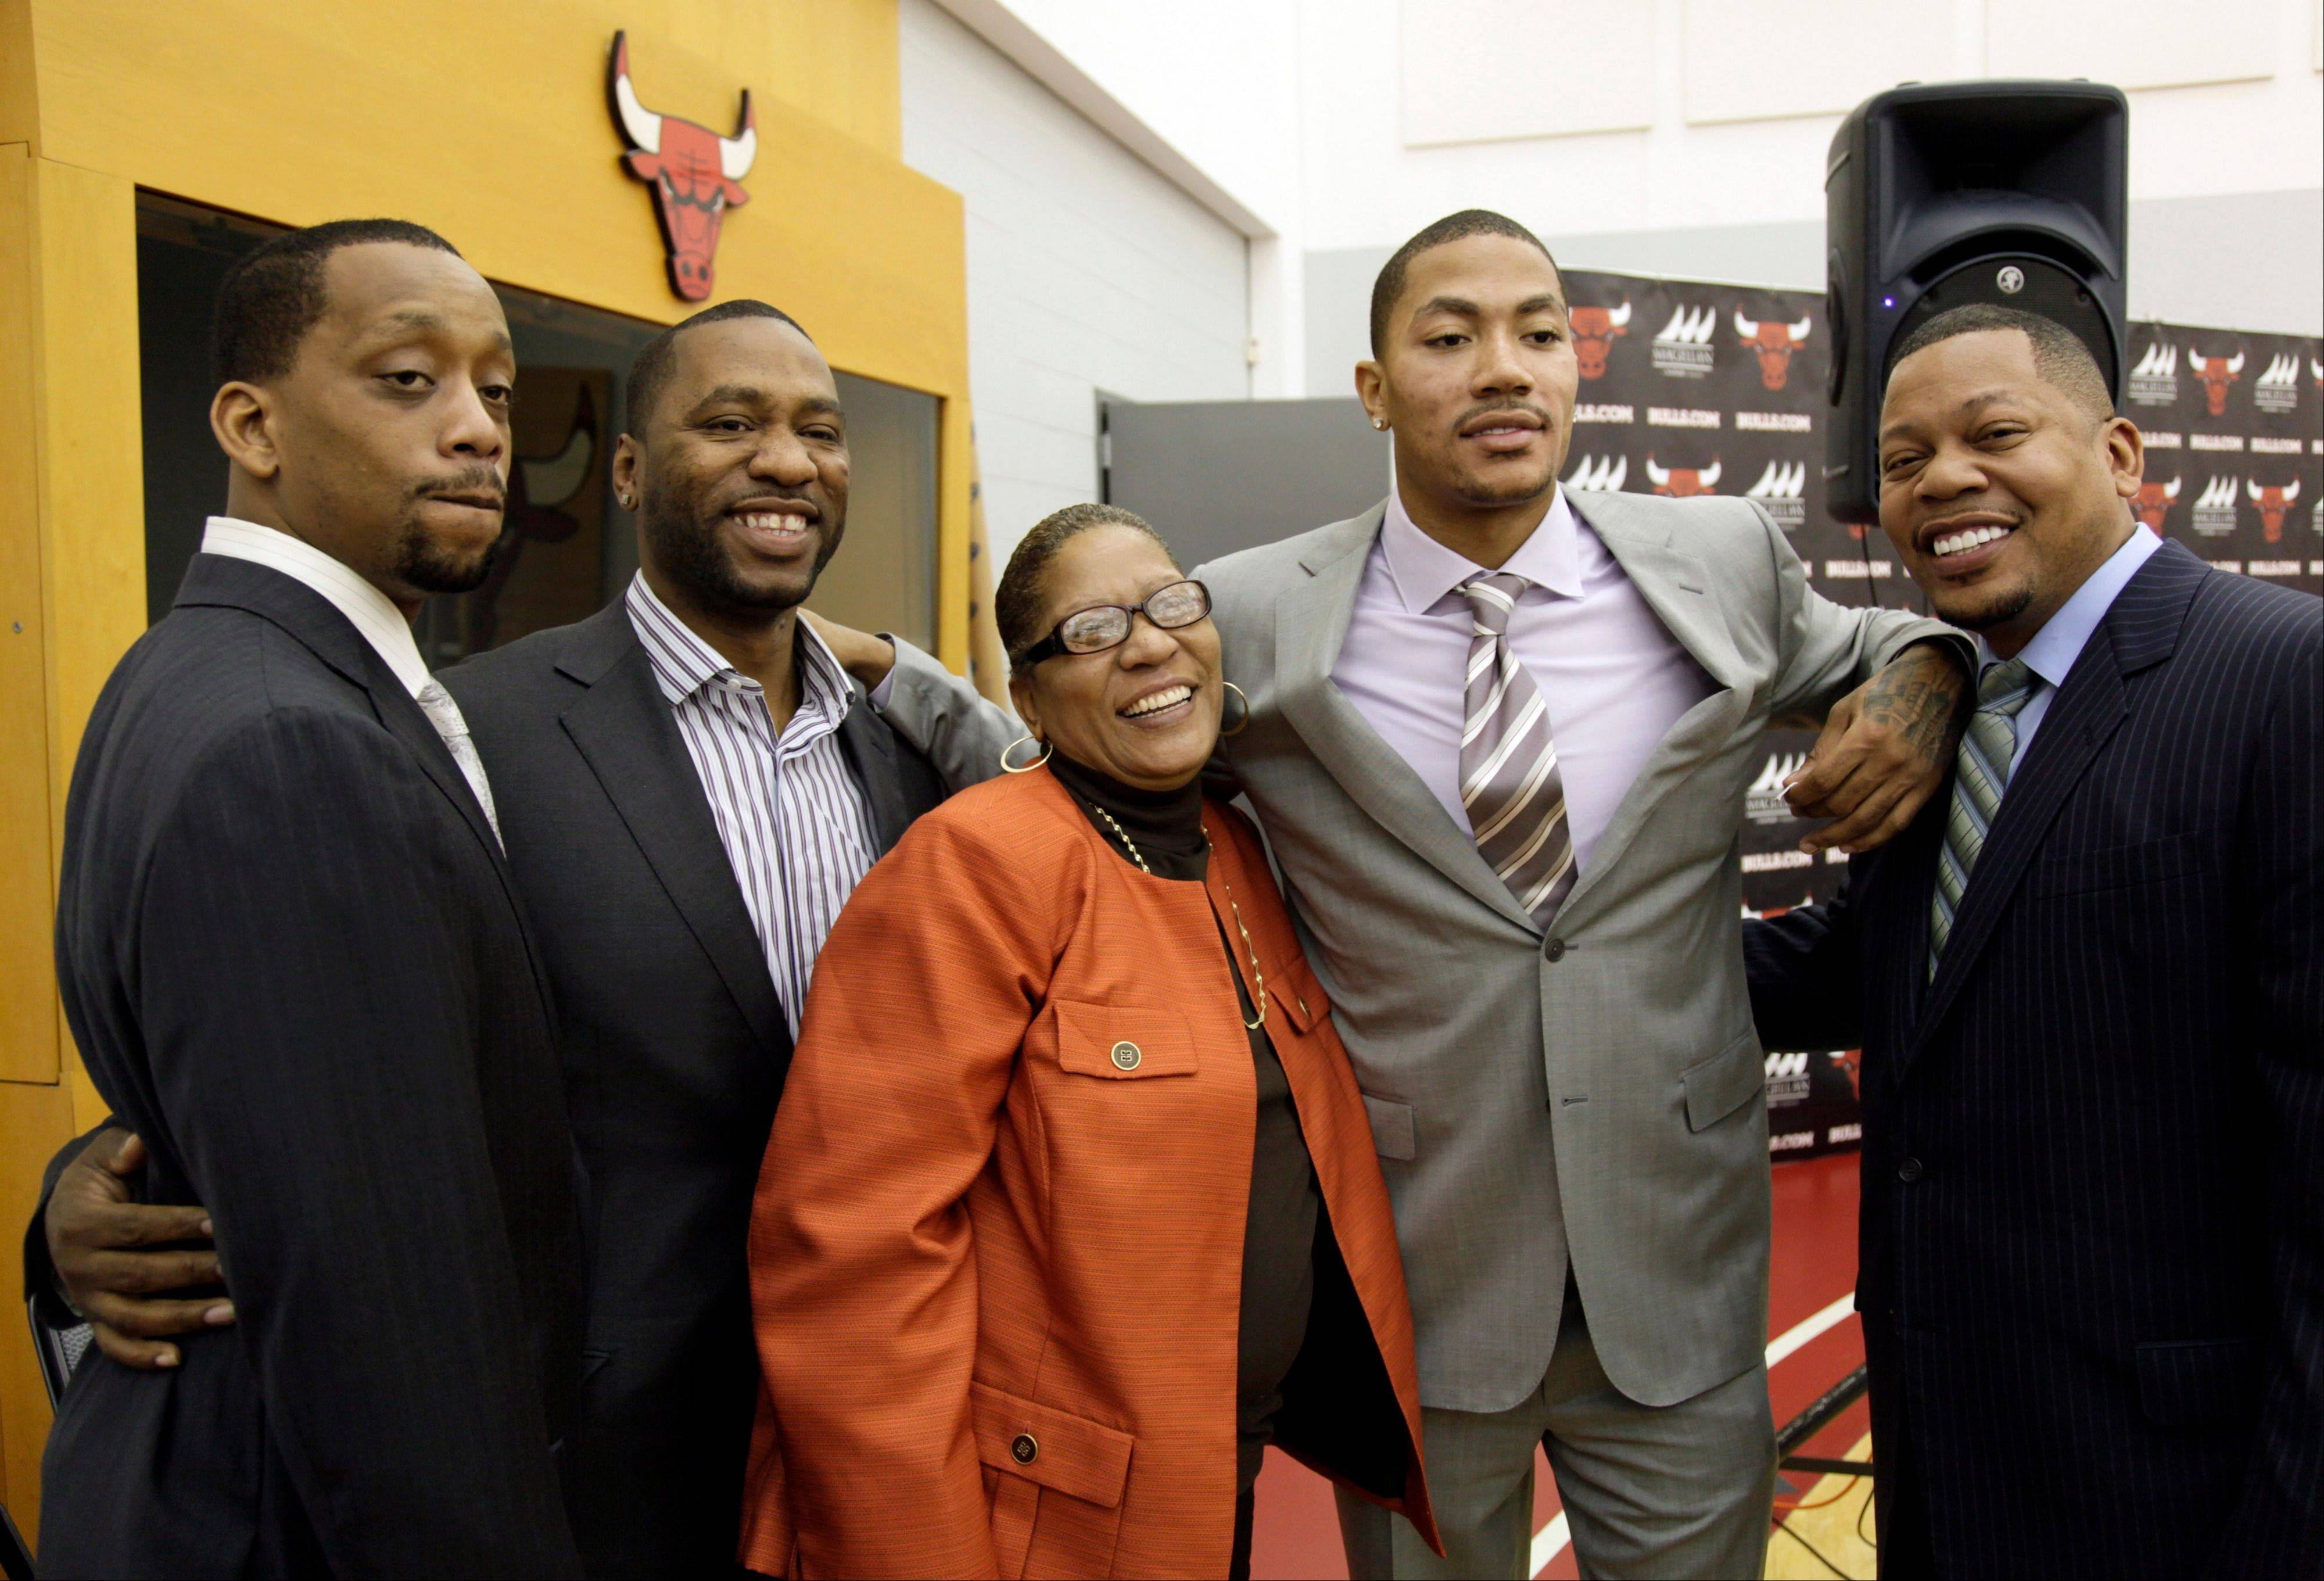 The Bulls' Derrick Rose, second from left, poses for a photo with his brothers Allan, left, Dwayne, second left, Reggie, right, and his mother Brenda after a news conference Wednesday after Rose agreed to a five-year contract extension worth approximately $94 million.